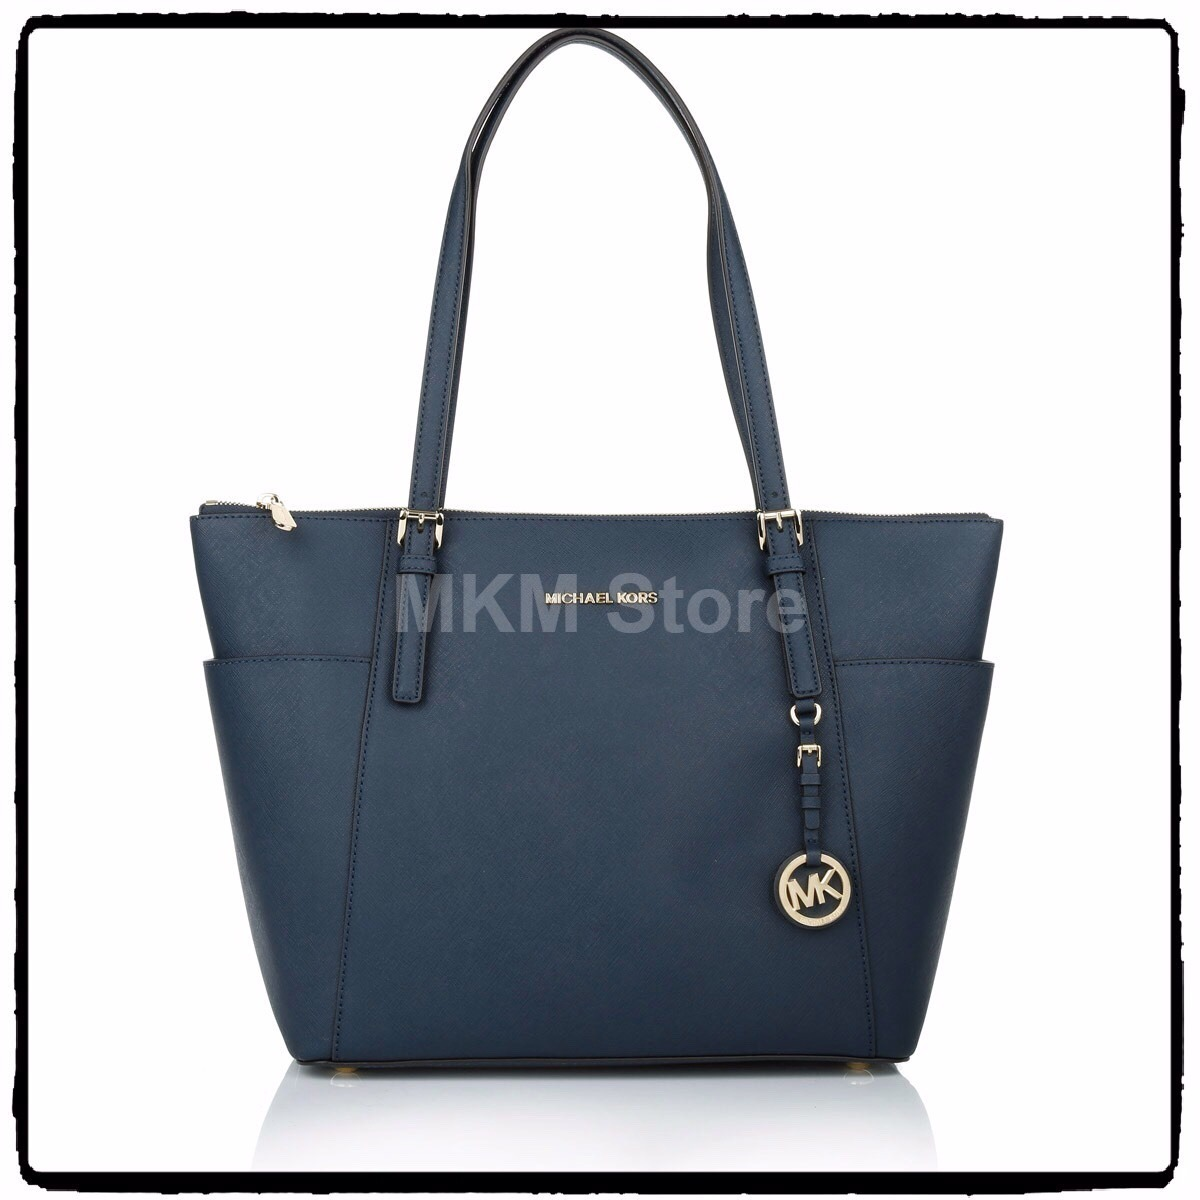 e922a242a Carteras Michael Kors Mercadolibre Peru | Stanford Center for ...